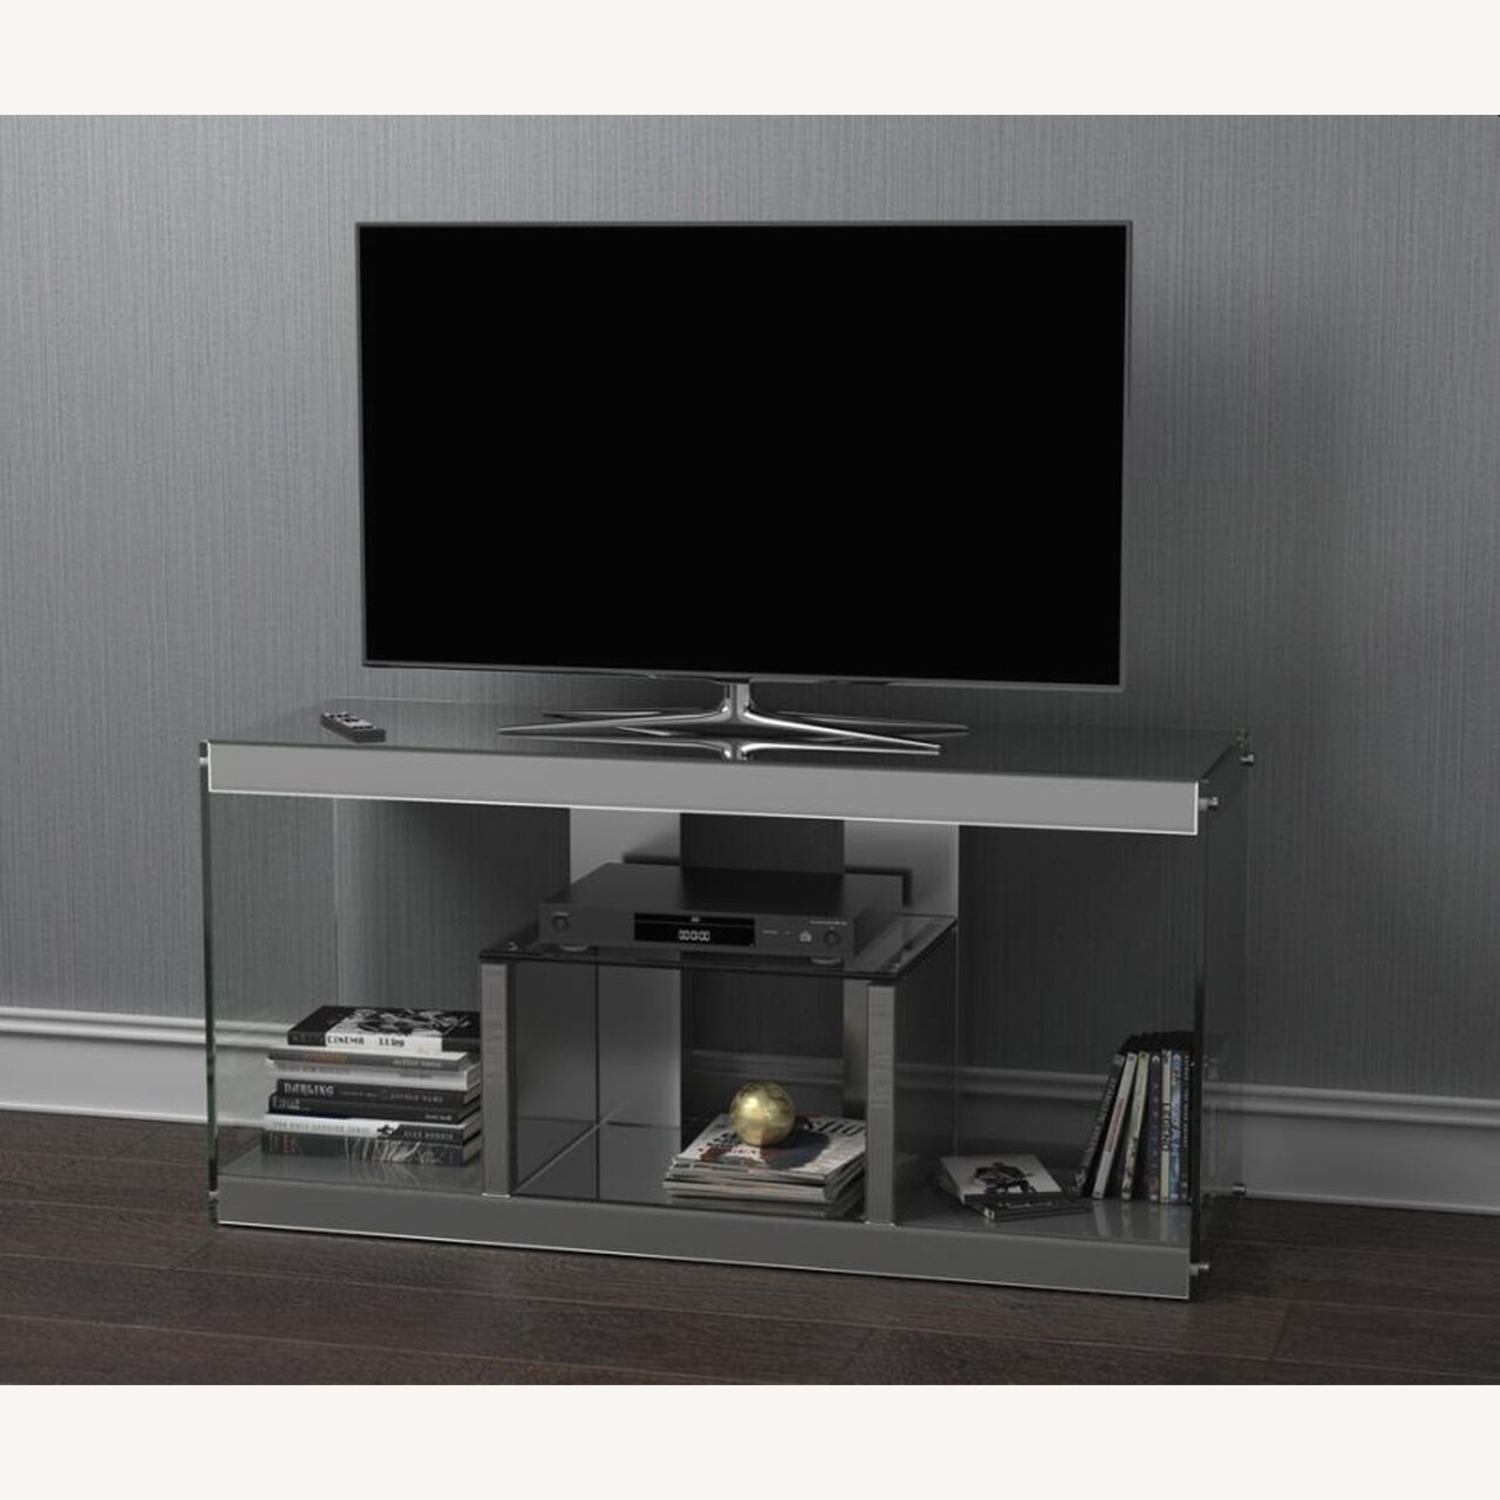 TV Console In Silver Mirrors W/ Stationary Shelf - image-2